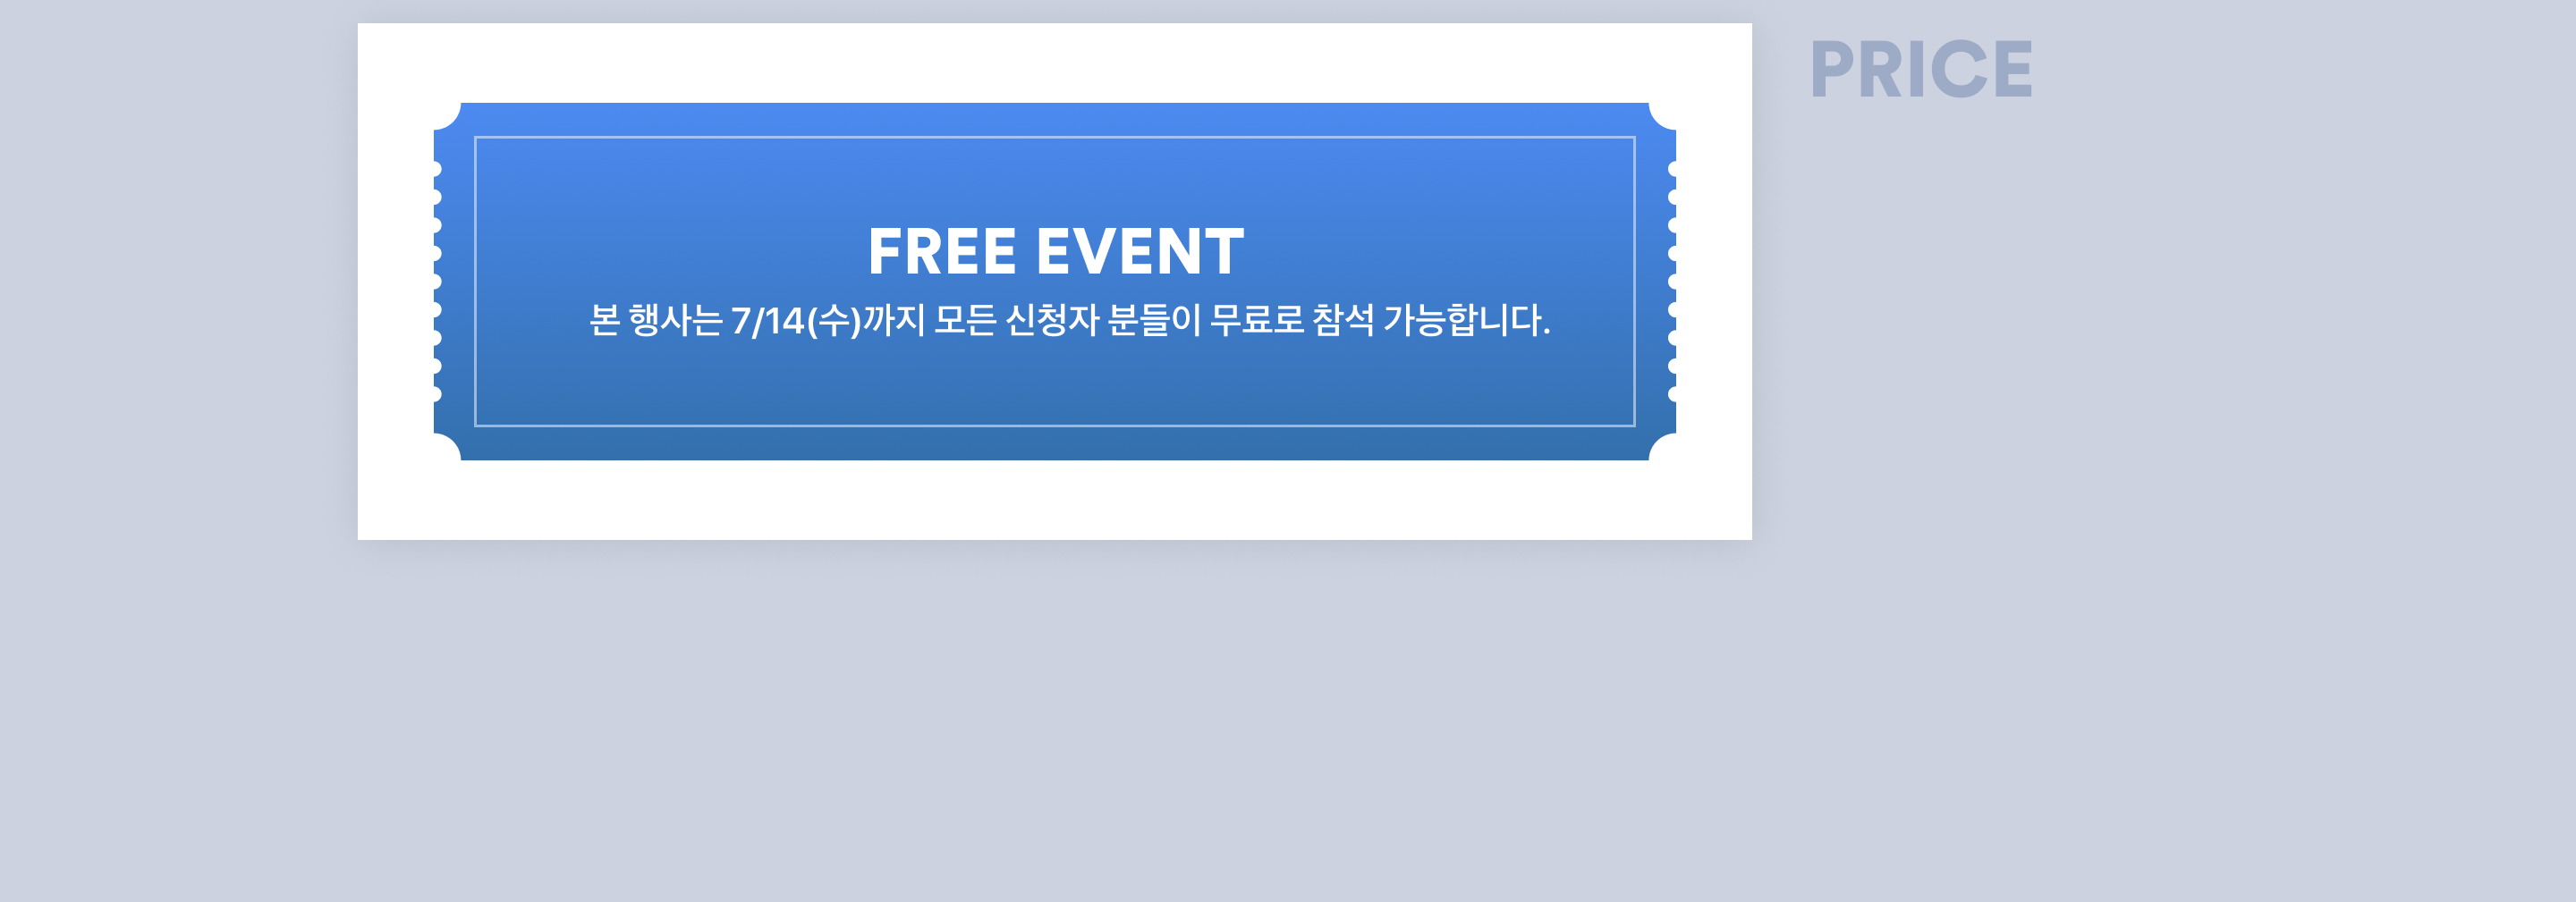 https://static.wanted.co.kr/images/events/1326/80709b95.jpg